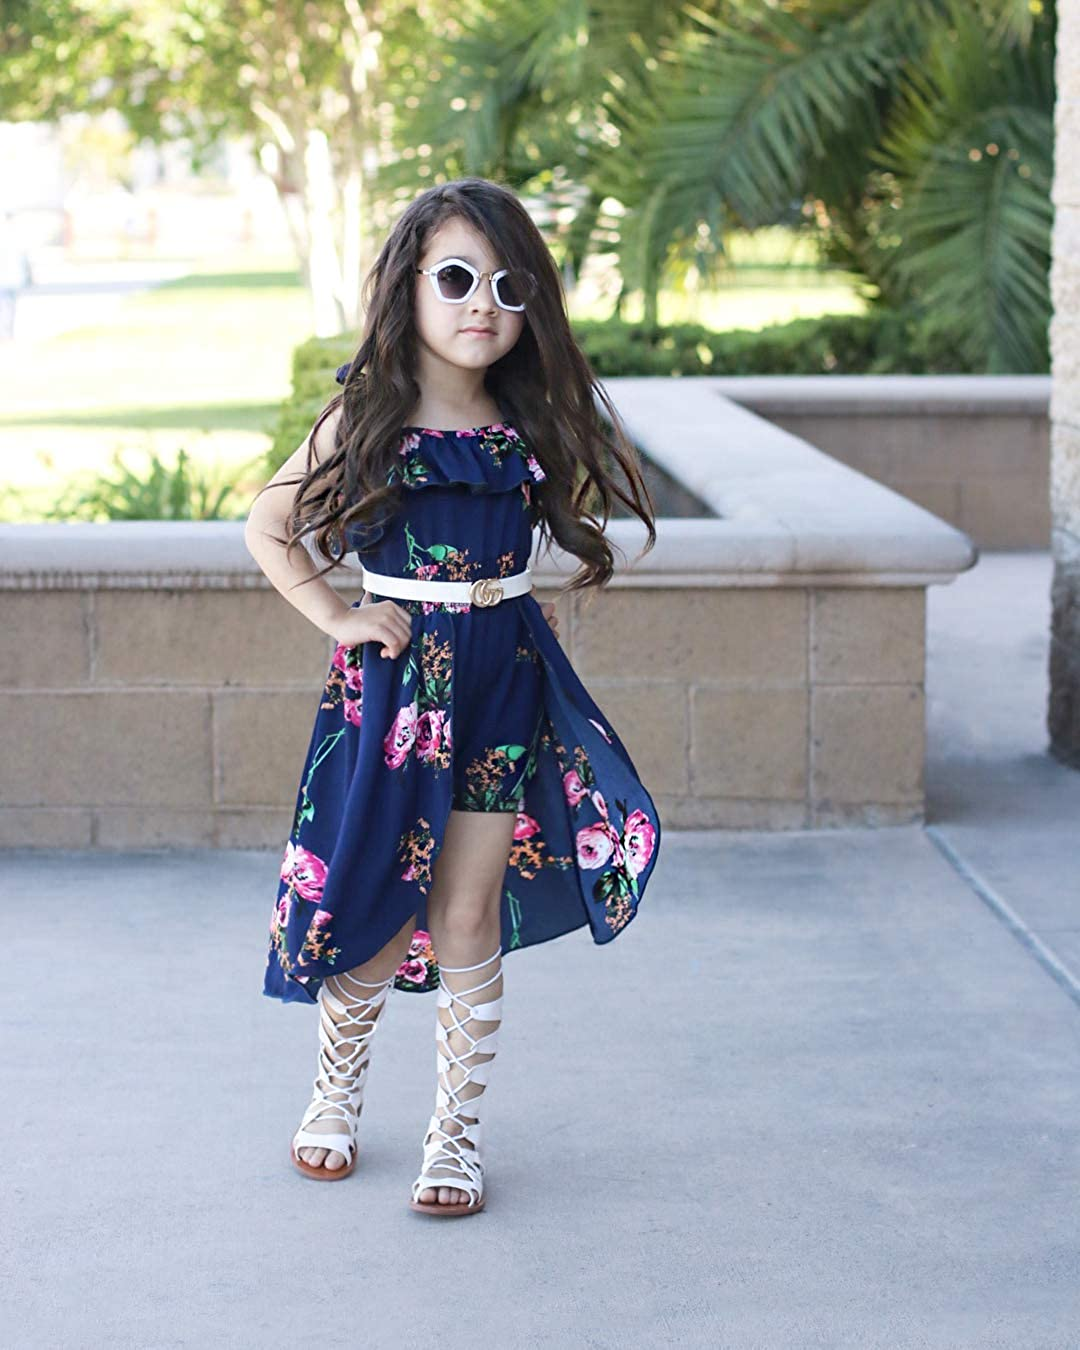 Baby Girls Ruffles Romper Outfits Floral Clothes Halter One-Pieces Shorts Jumpsuit Sunsuit Dress Sets